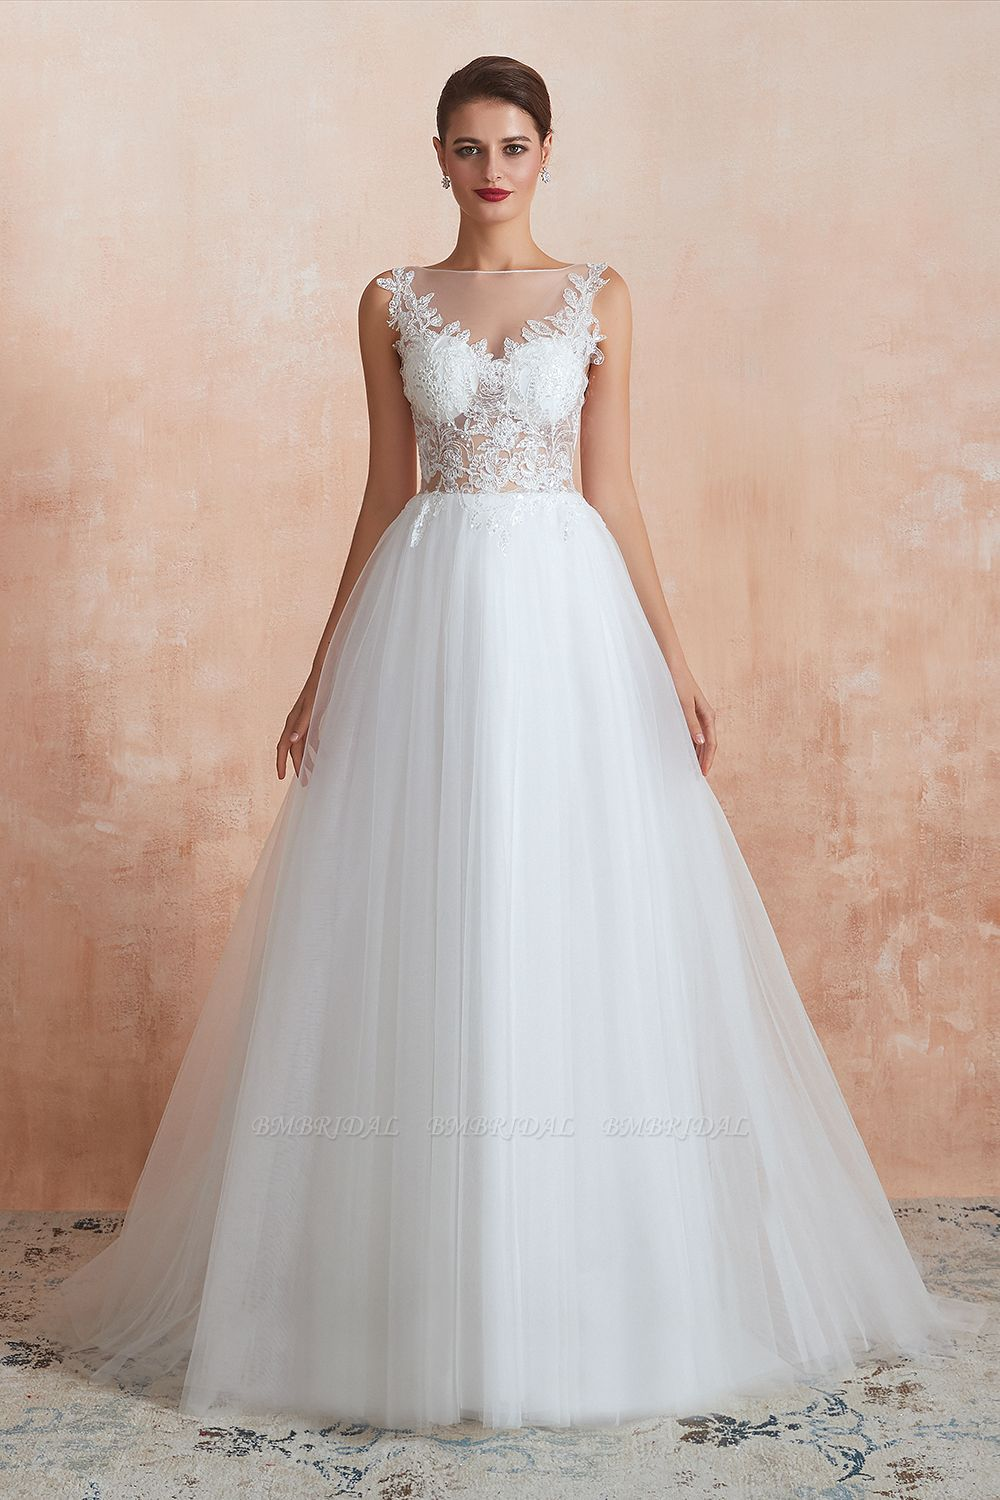 Exquisite Sequins White Tulle Affordable Wedding Dresses with Appliques